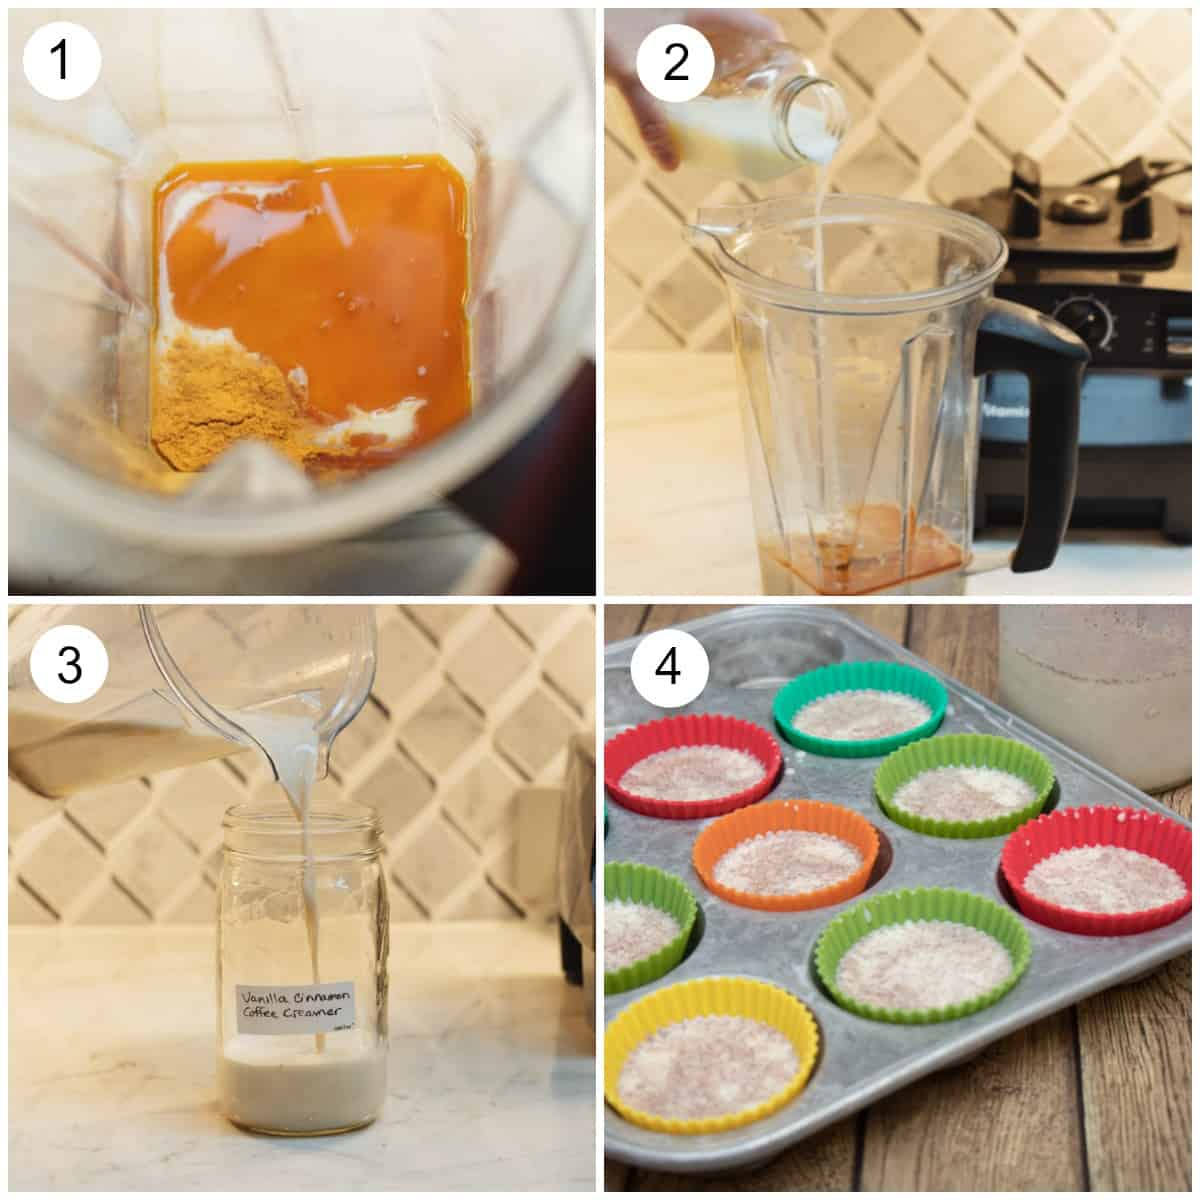 Collage image of each step making Cinnamon Vanilla Creamer in blender and make ahead options.